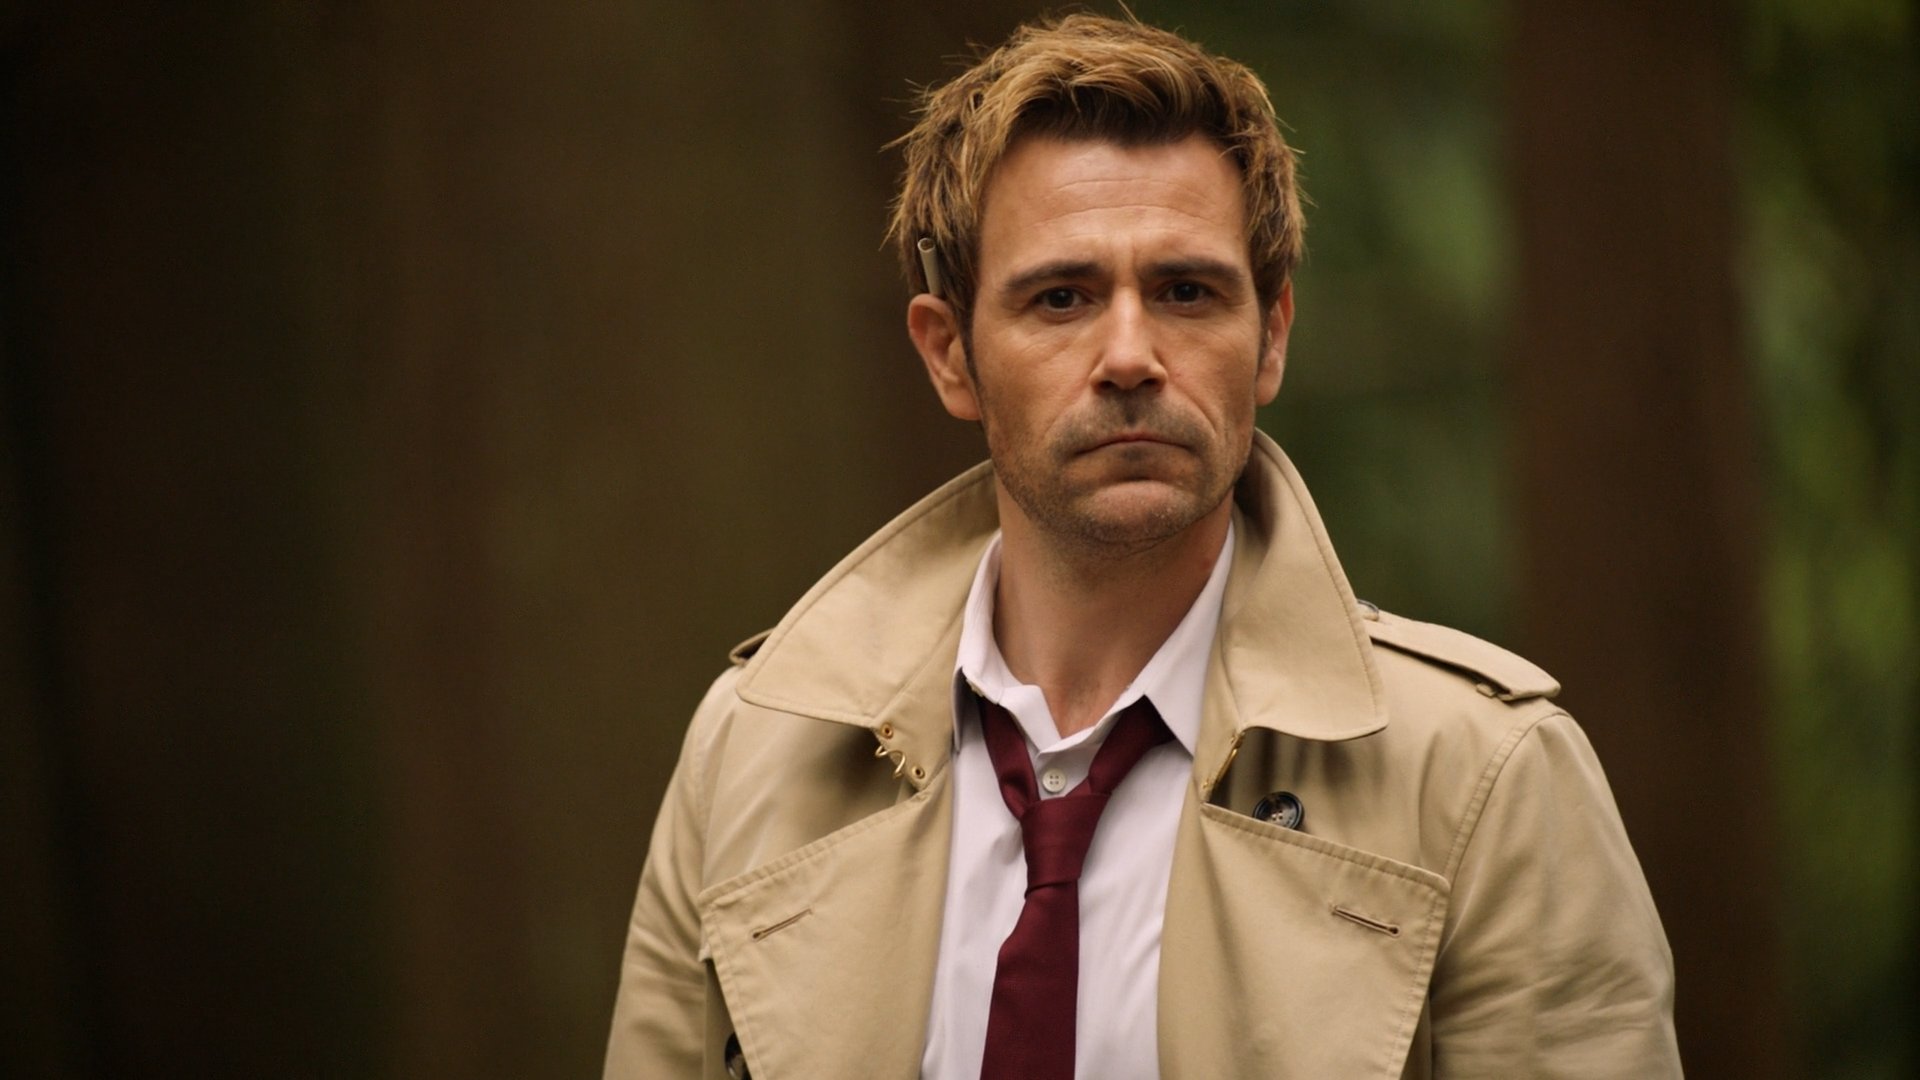 John Constantine | Arrowverse Wiki | FANDOM powered by Wikia